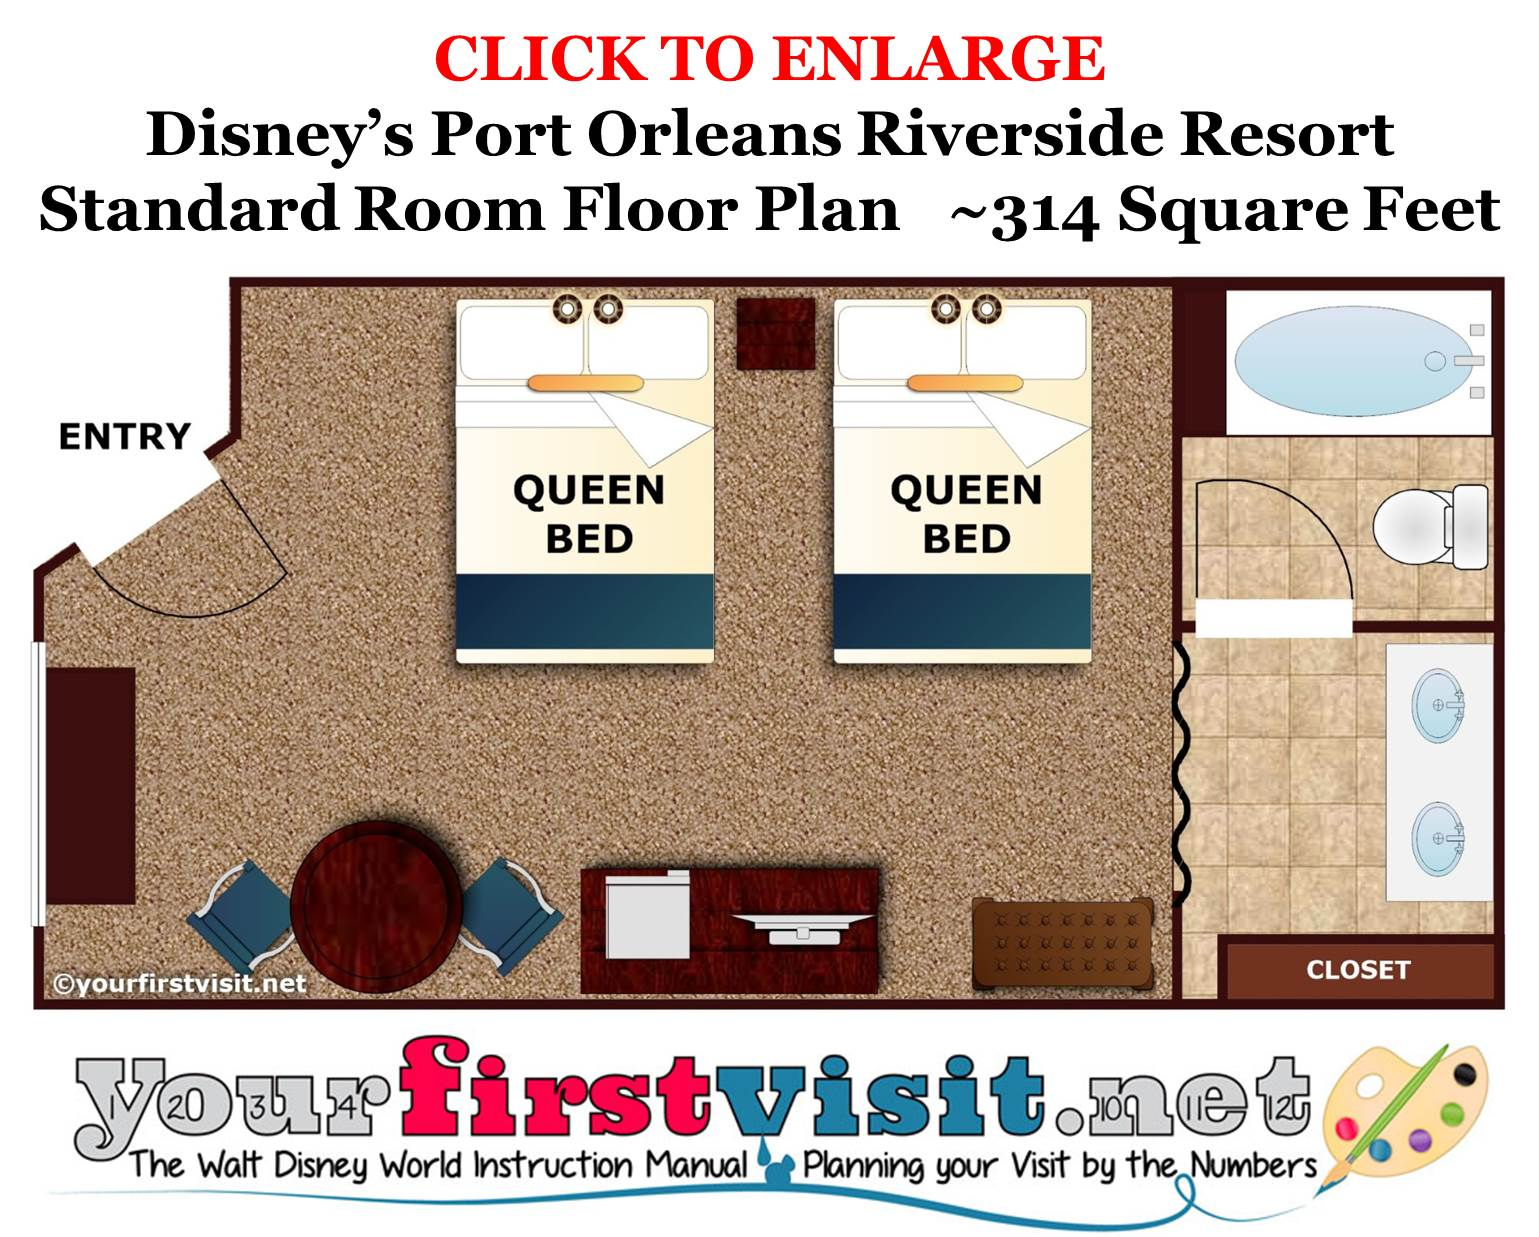 Floor Plan Standard Room Disney's Port Orleans Riverside Resort from yourfirstvisit.net